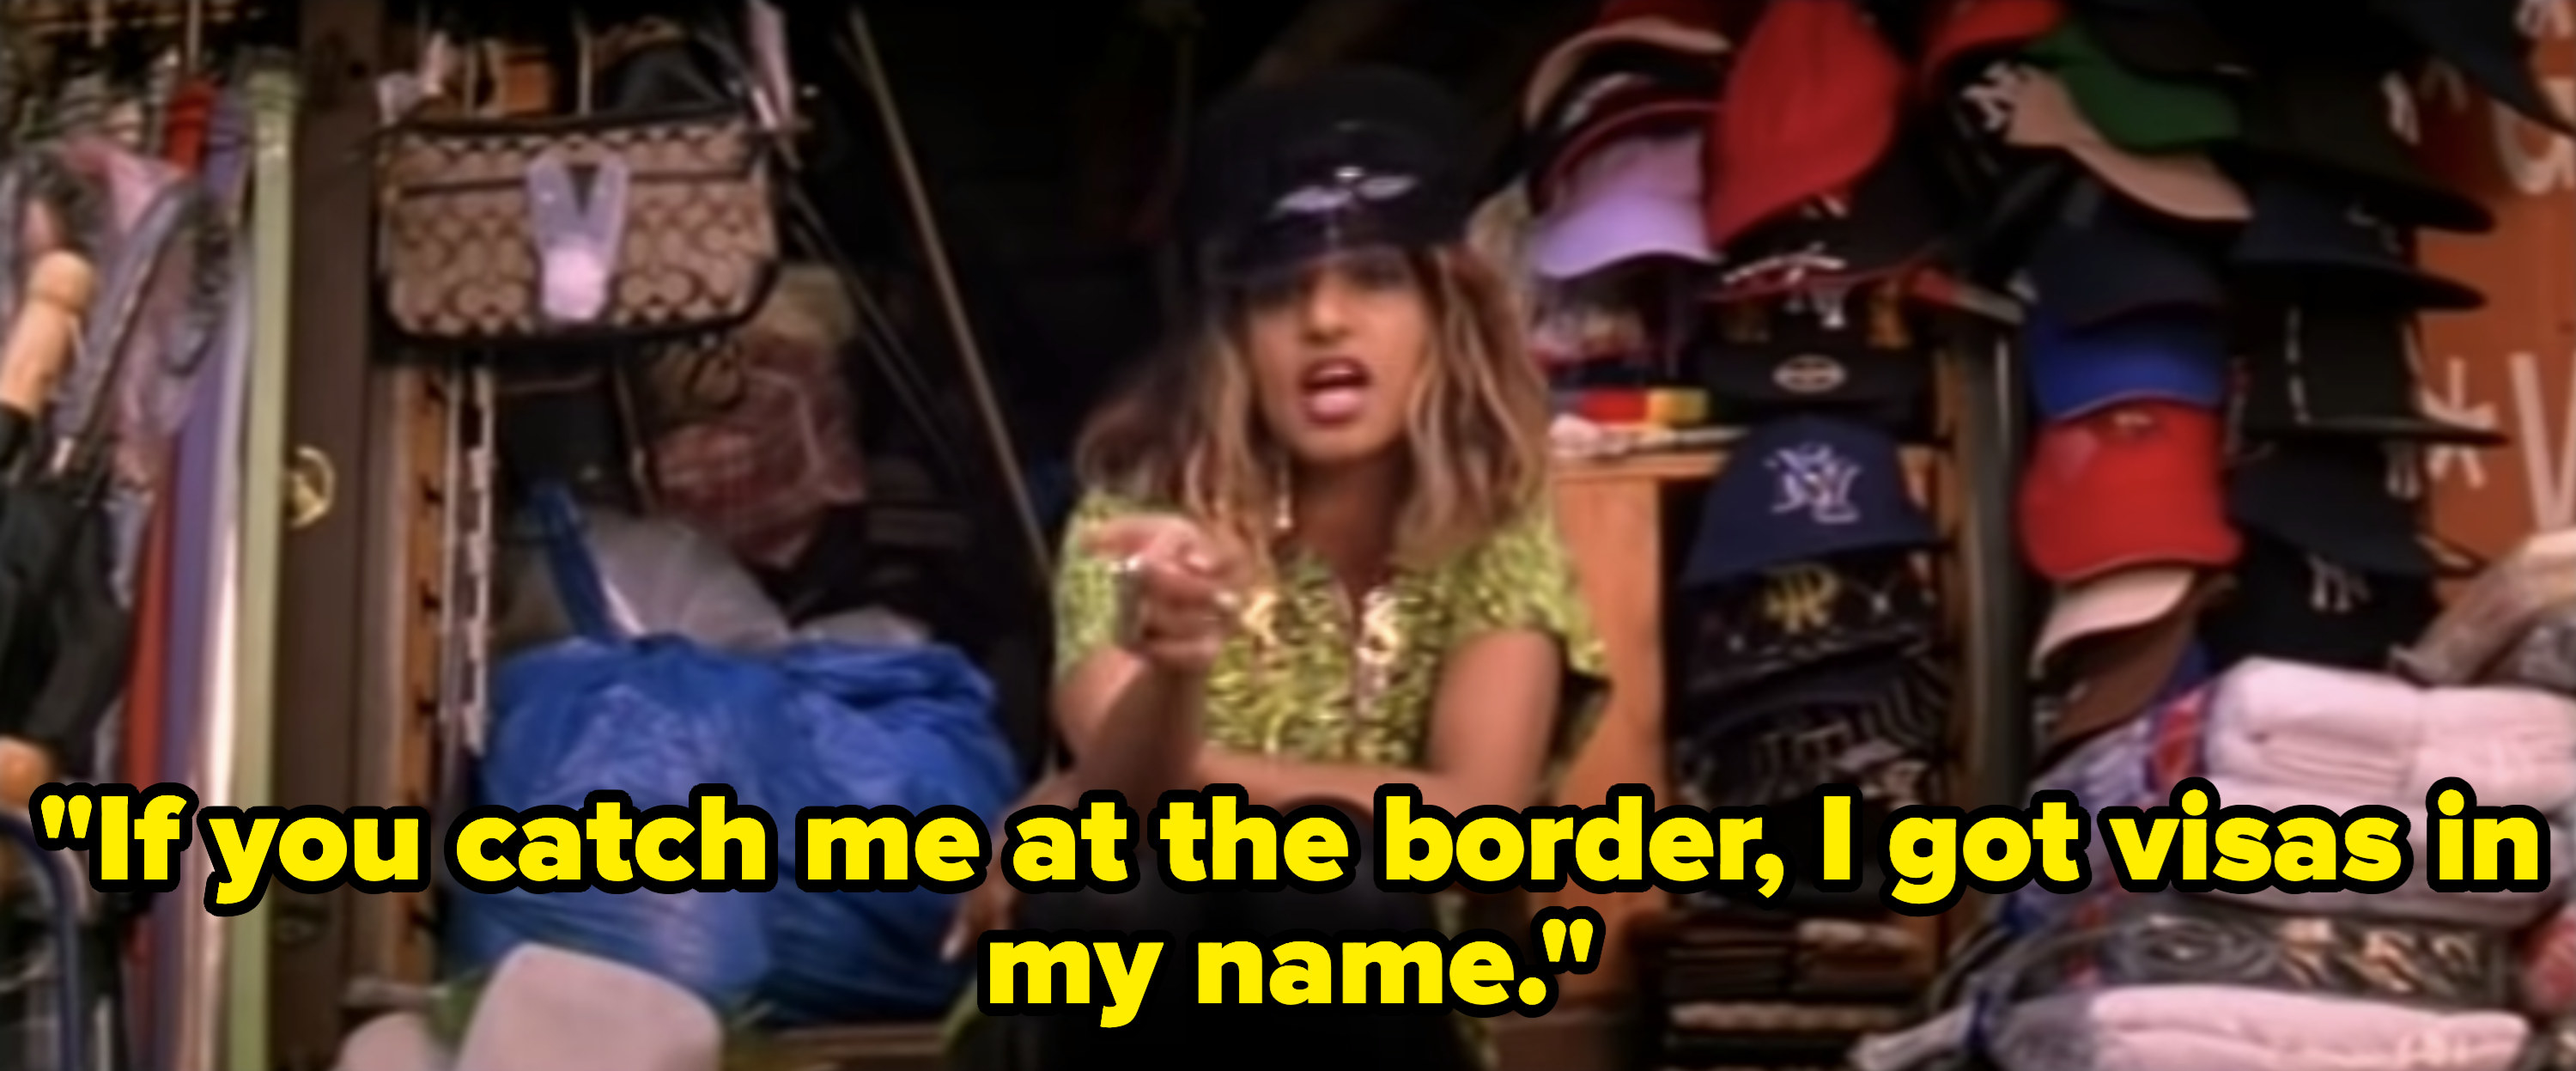 M.I.A. rapping in a hat shop.